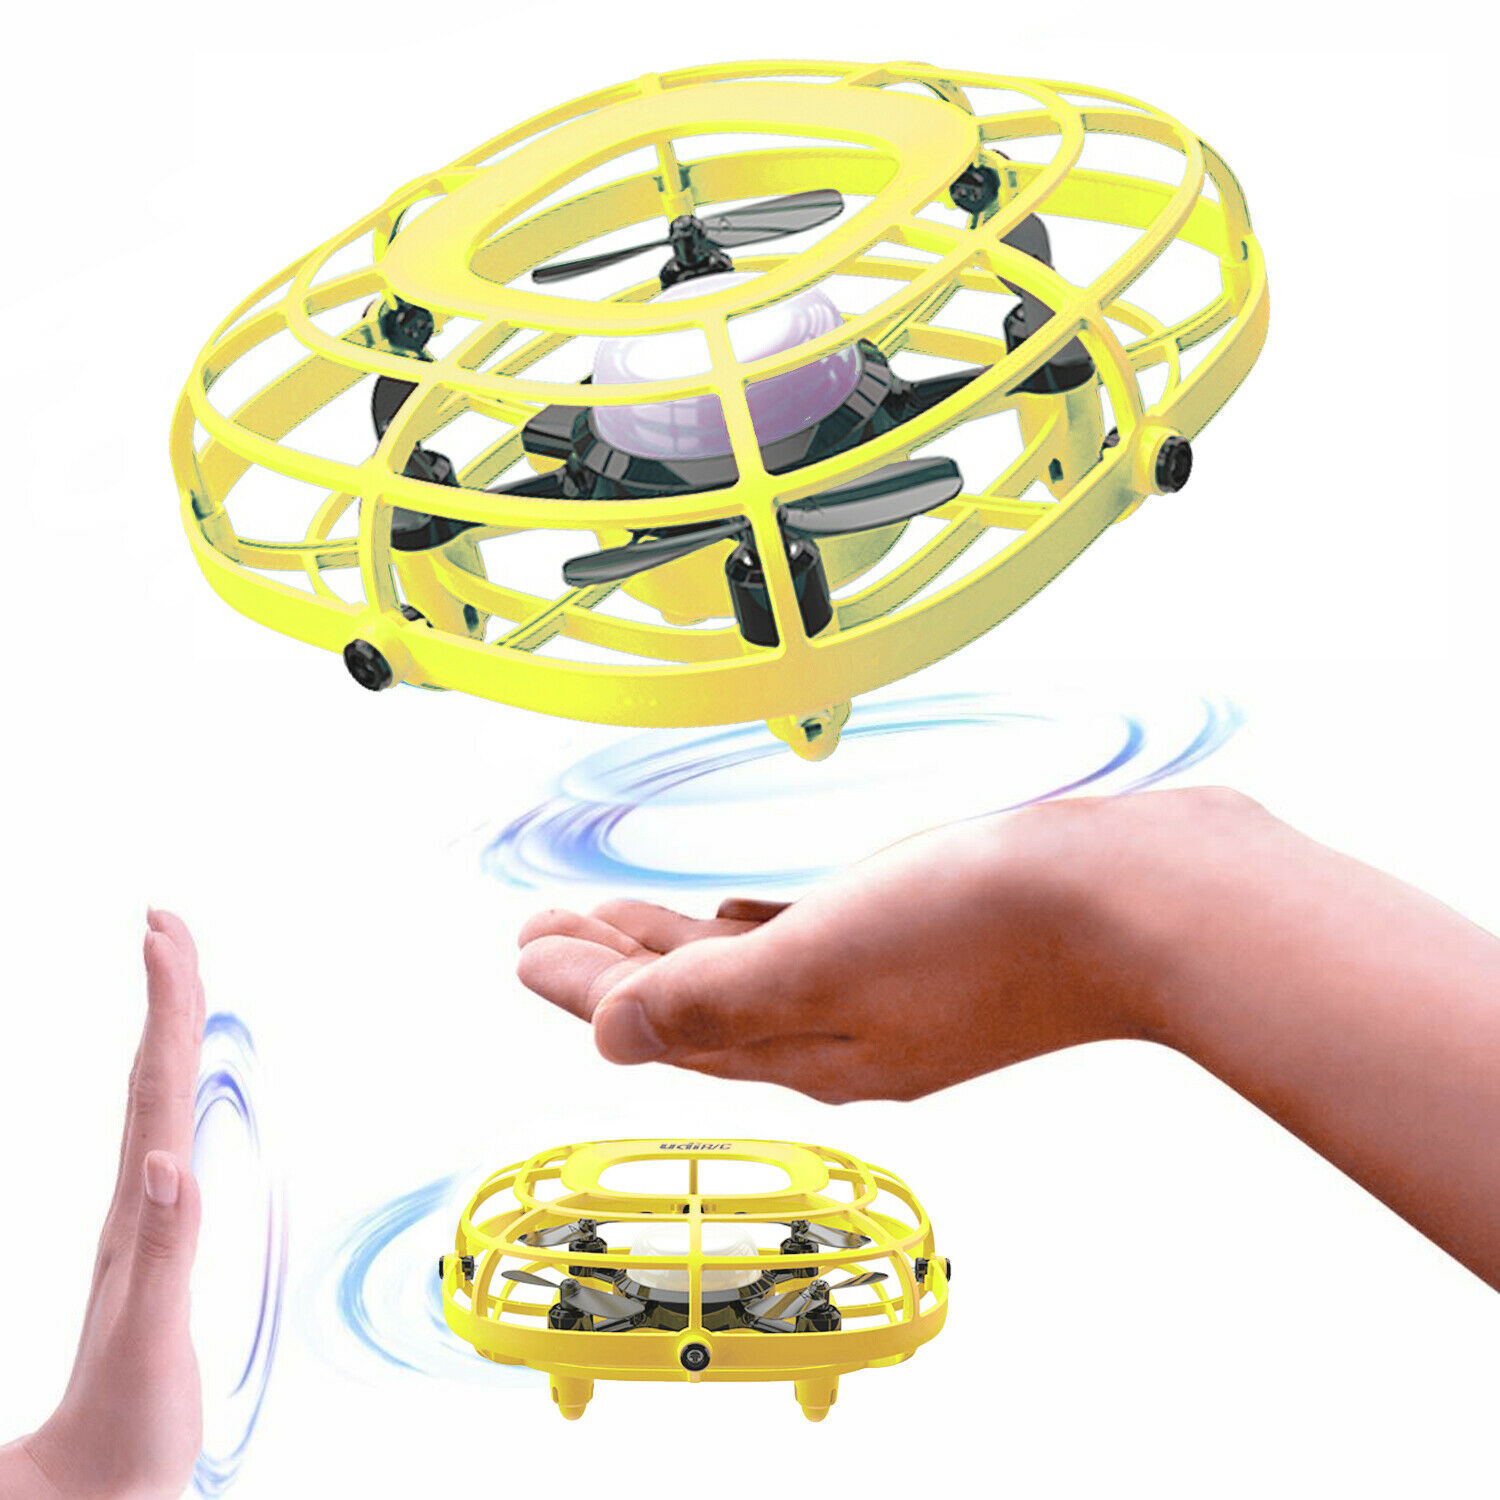 Udirc U58 For Kid RC Quadcopter Fan 2-in-1 Gesture Remote In